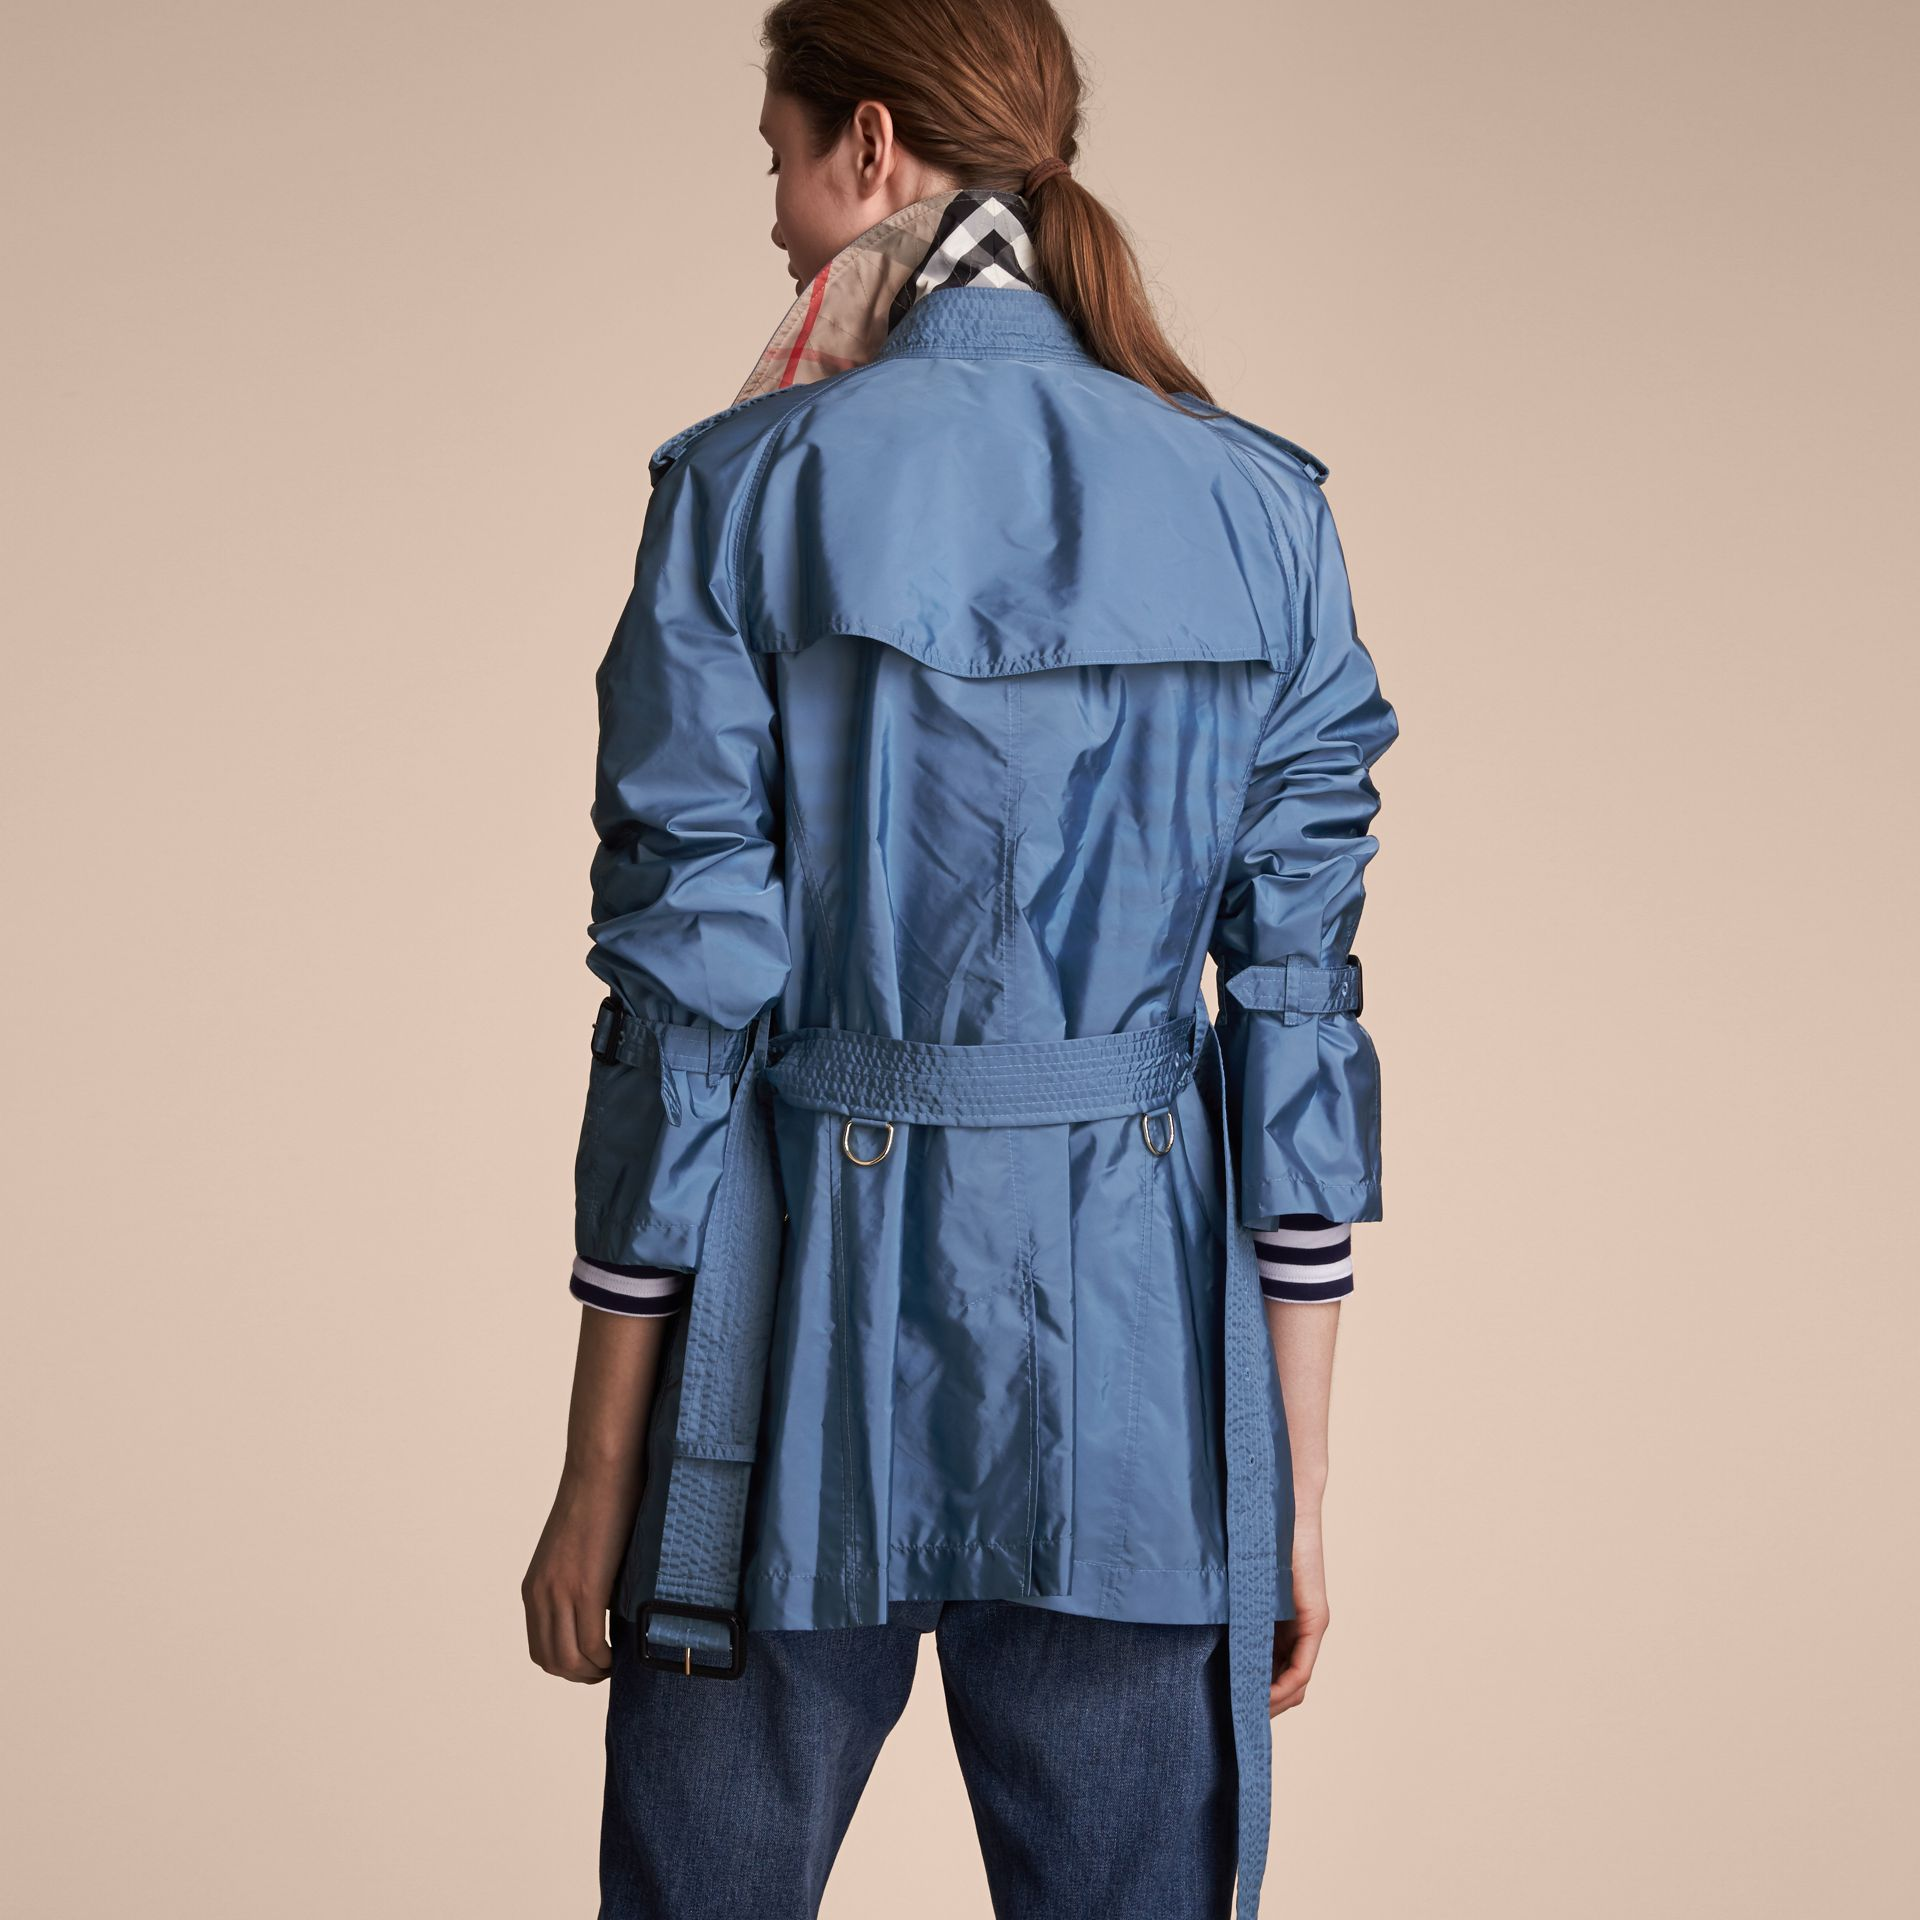 Packaway Ruffle Detail Showerproof Trench Coat in Lupin Blue - Women | Burberry - gallery image 3